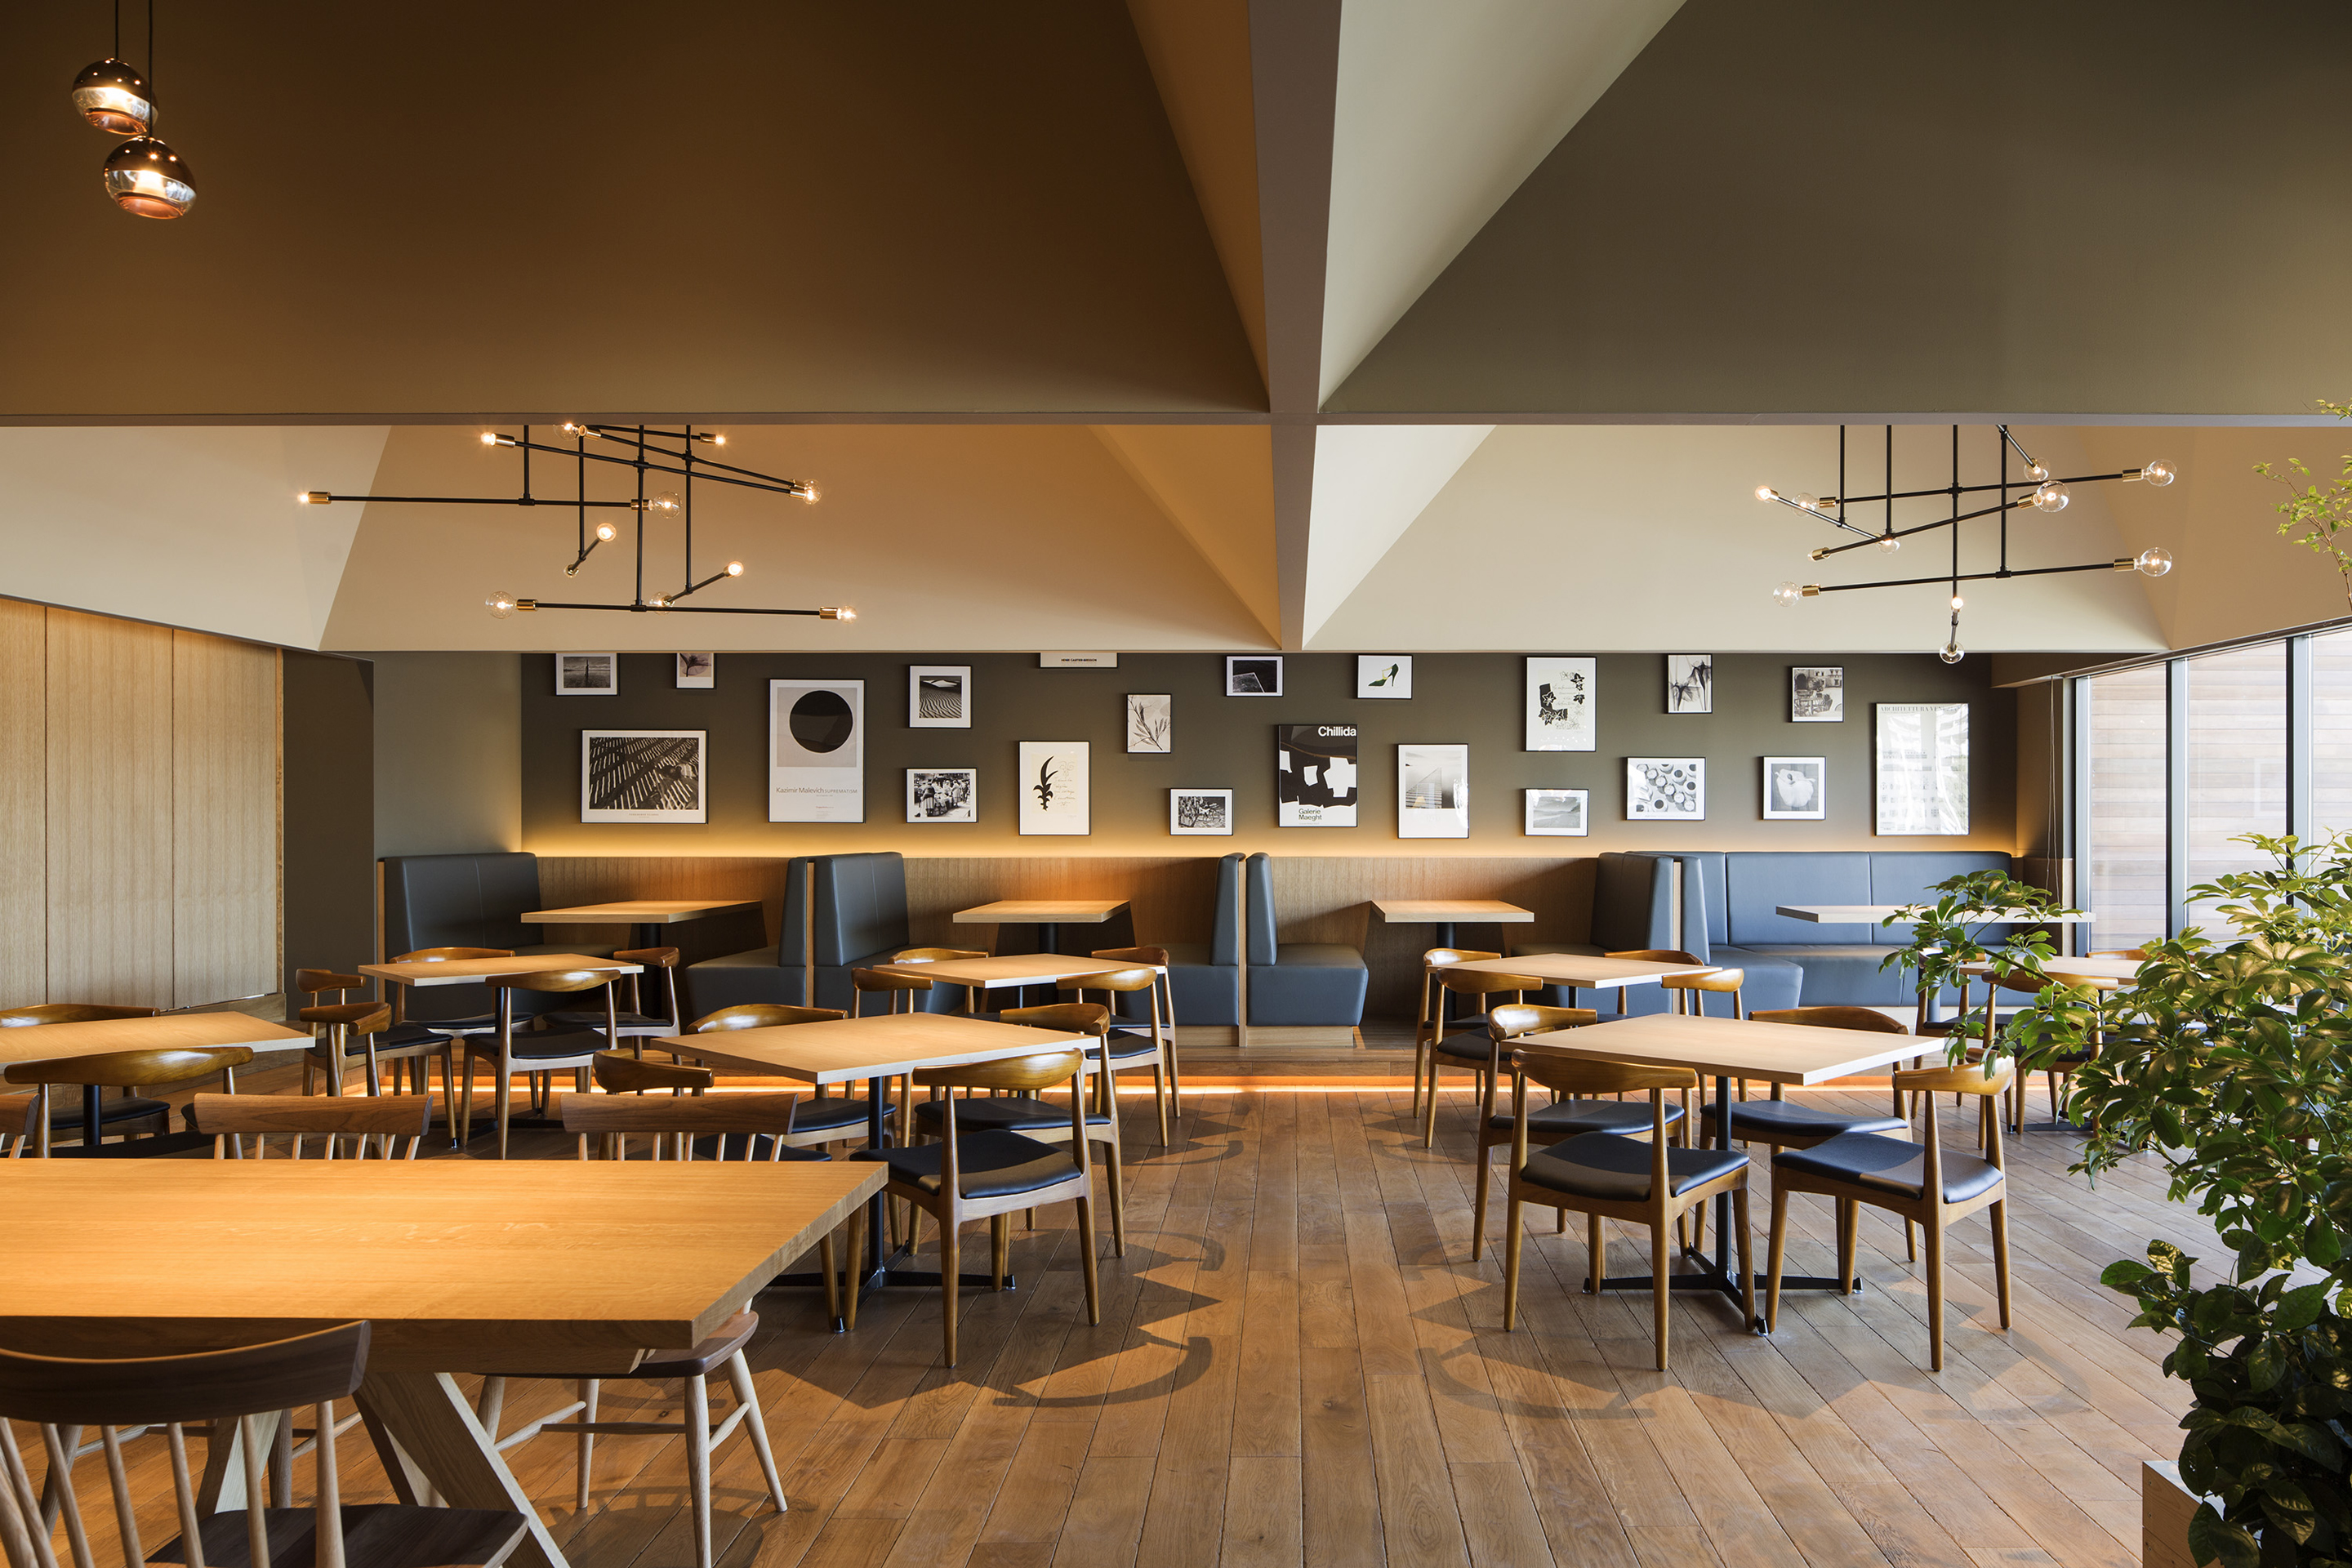 Classroom Restaurant Design ~ Trendletter imm cologne design culture and cuisine